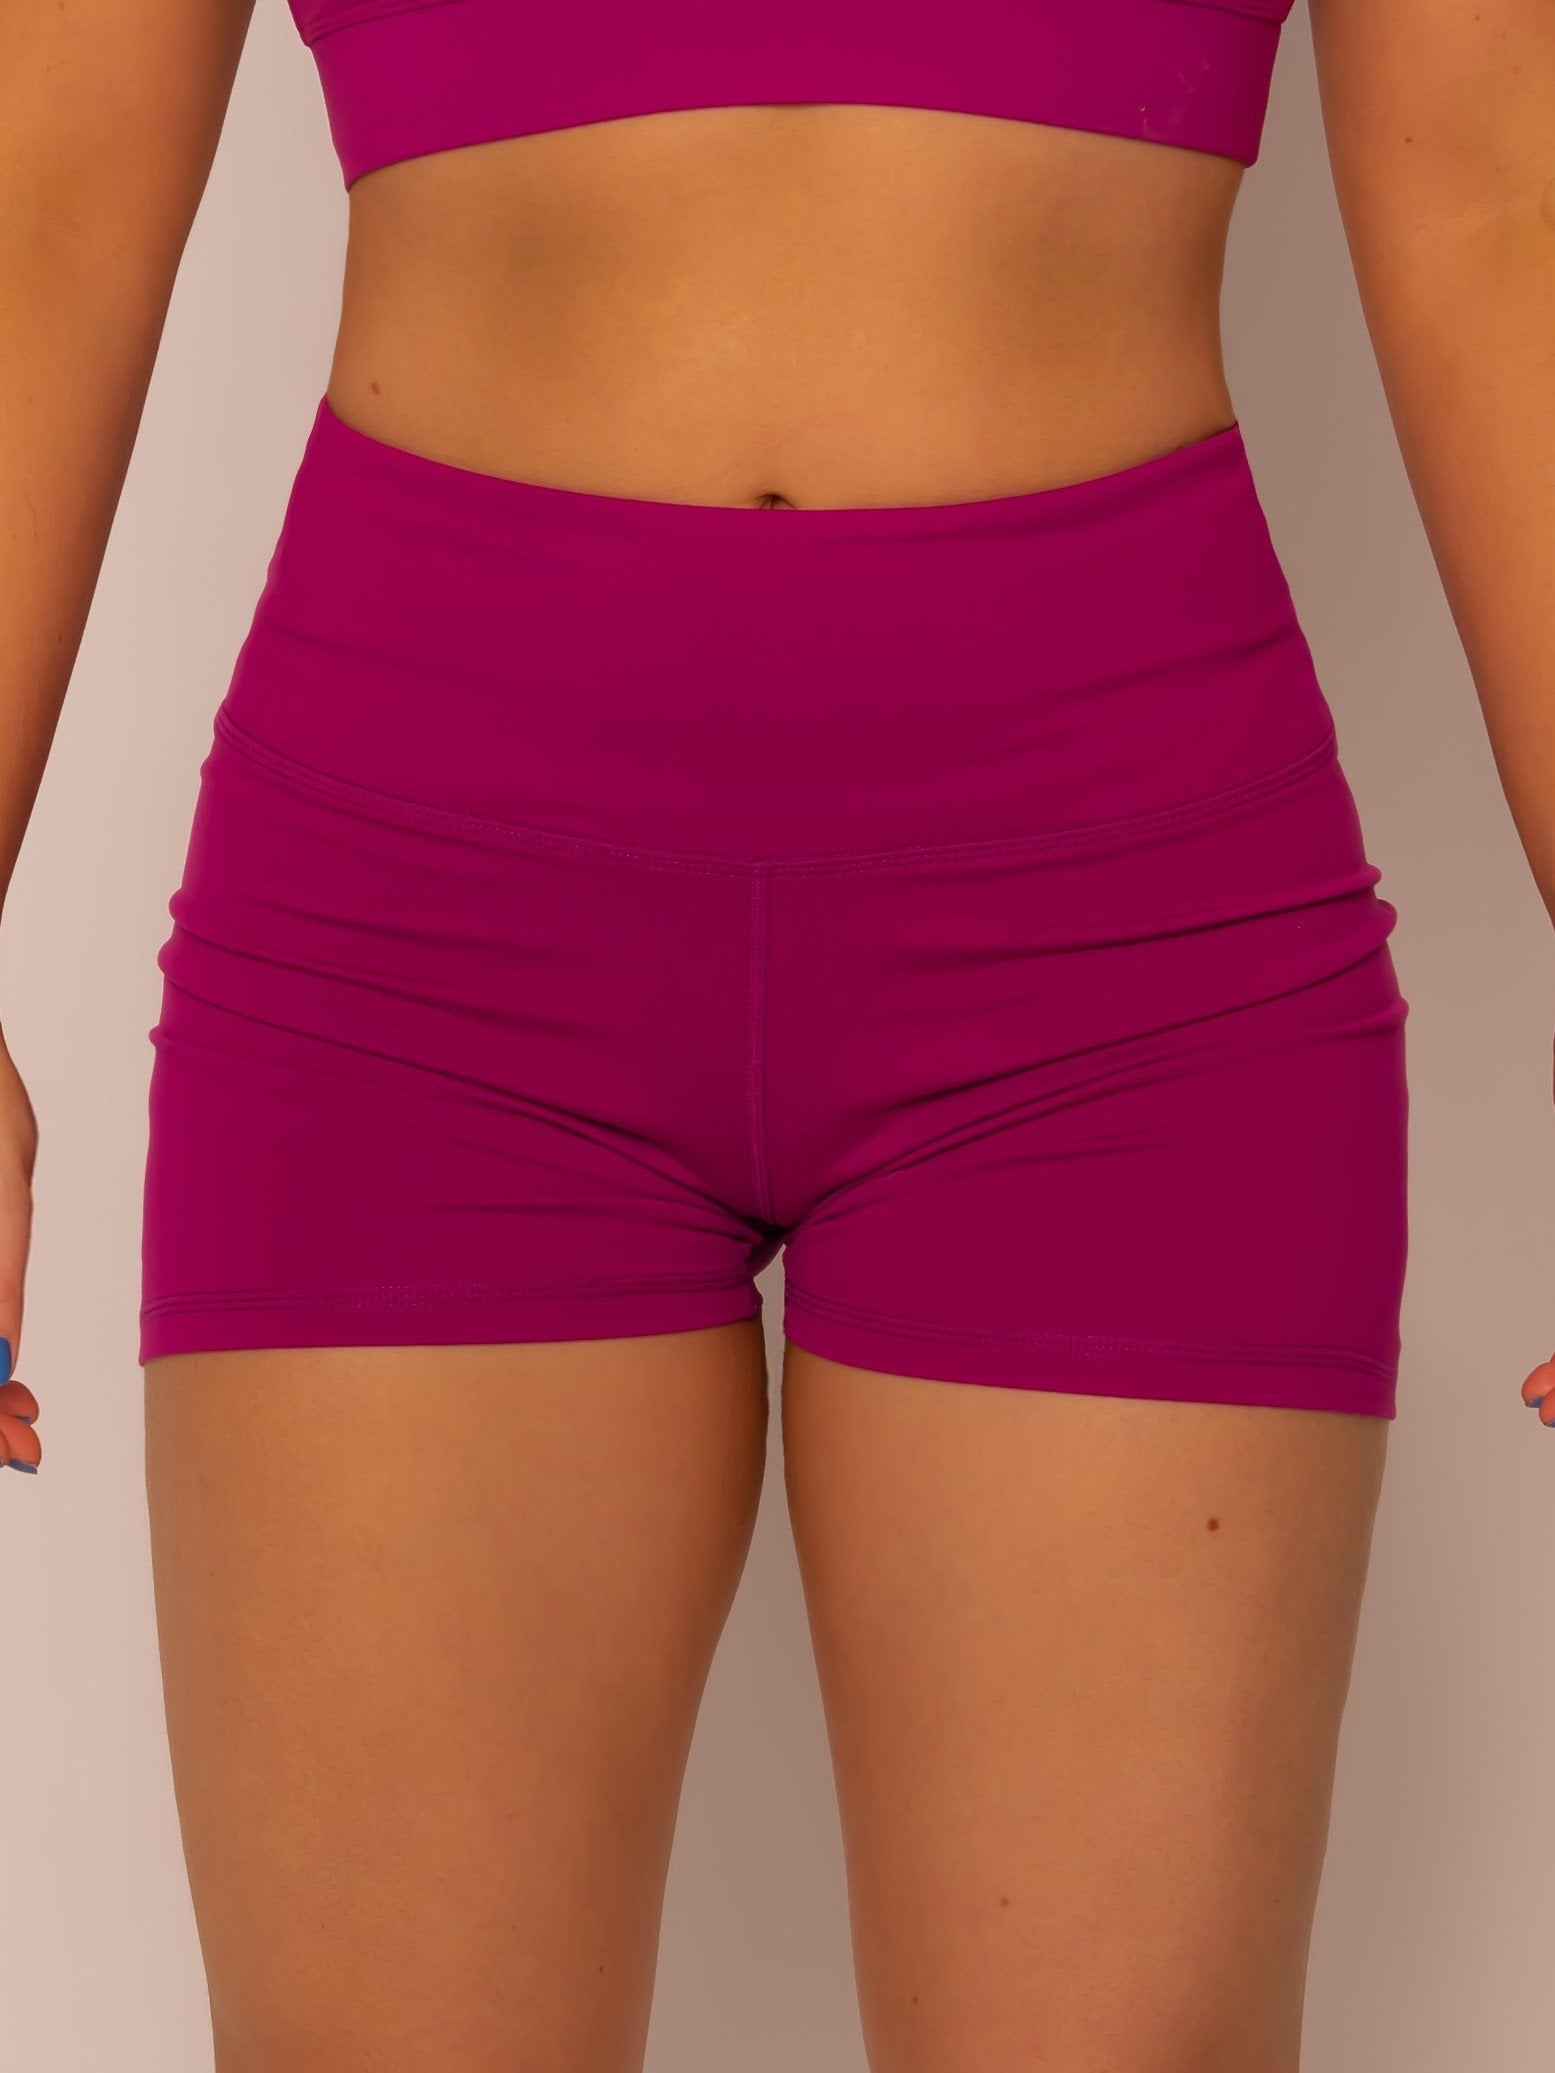 Purple Booty Shorts - Iron Addiction